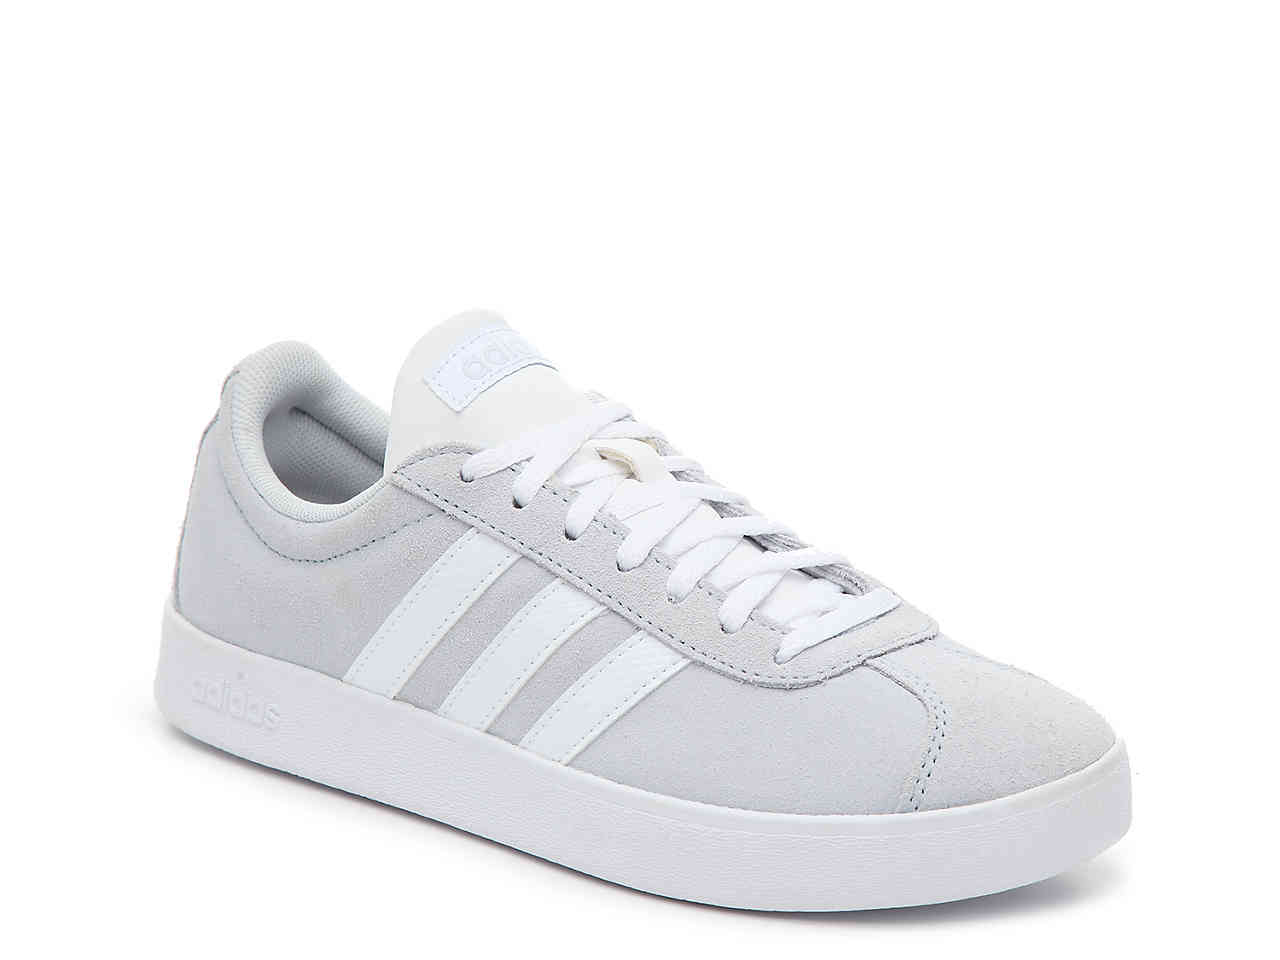 Adidas Vl Court 2.0 : Adidas Online | Great Prices & Fast ...